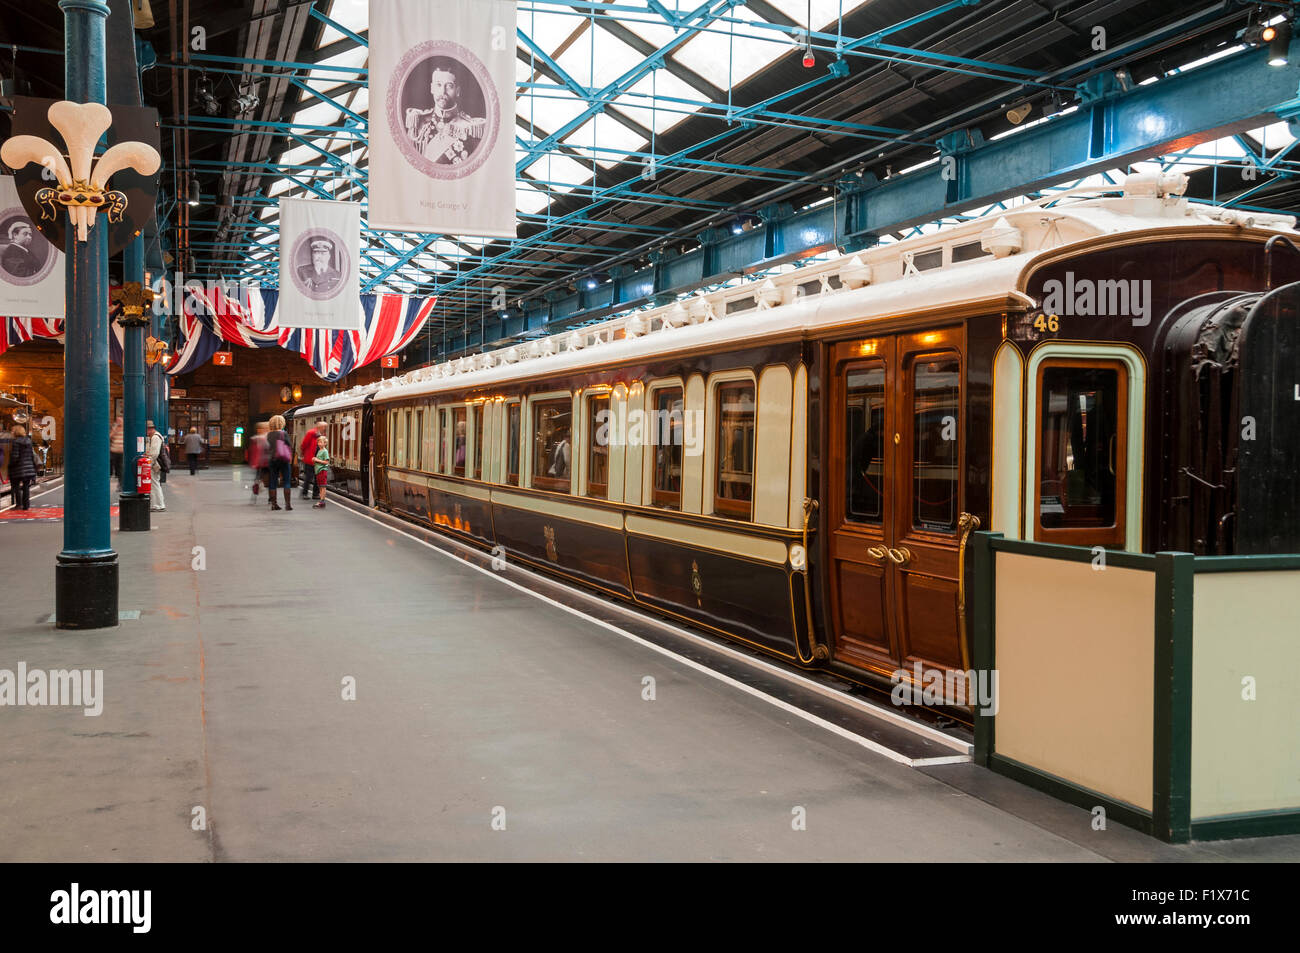 The Royal Carriages at the National Railway Museum, City of York, Yorkshire, England, UK - Stock Image